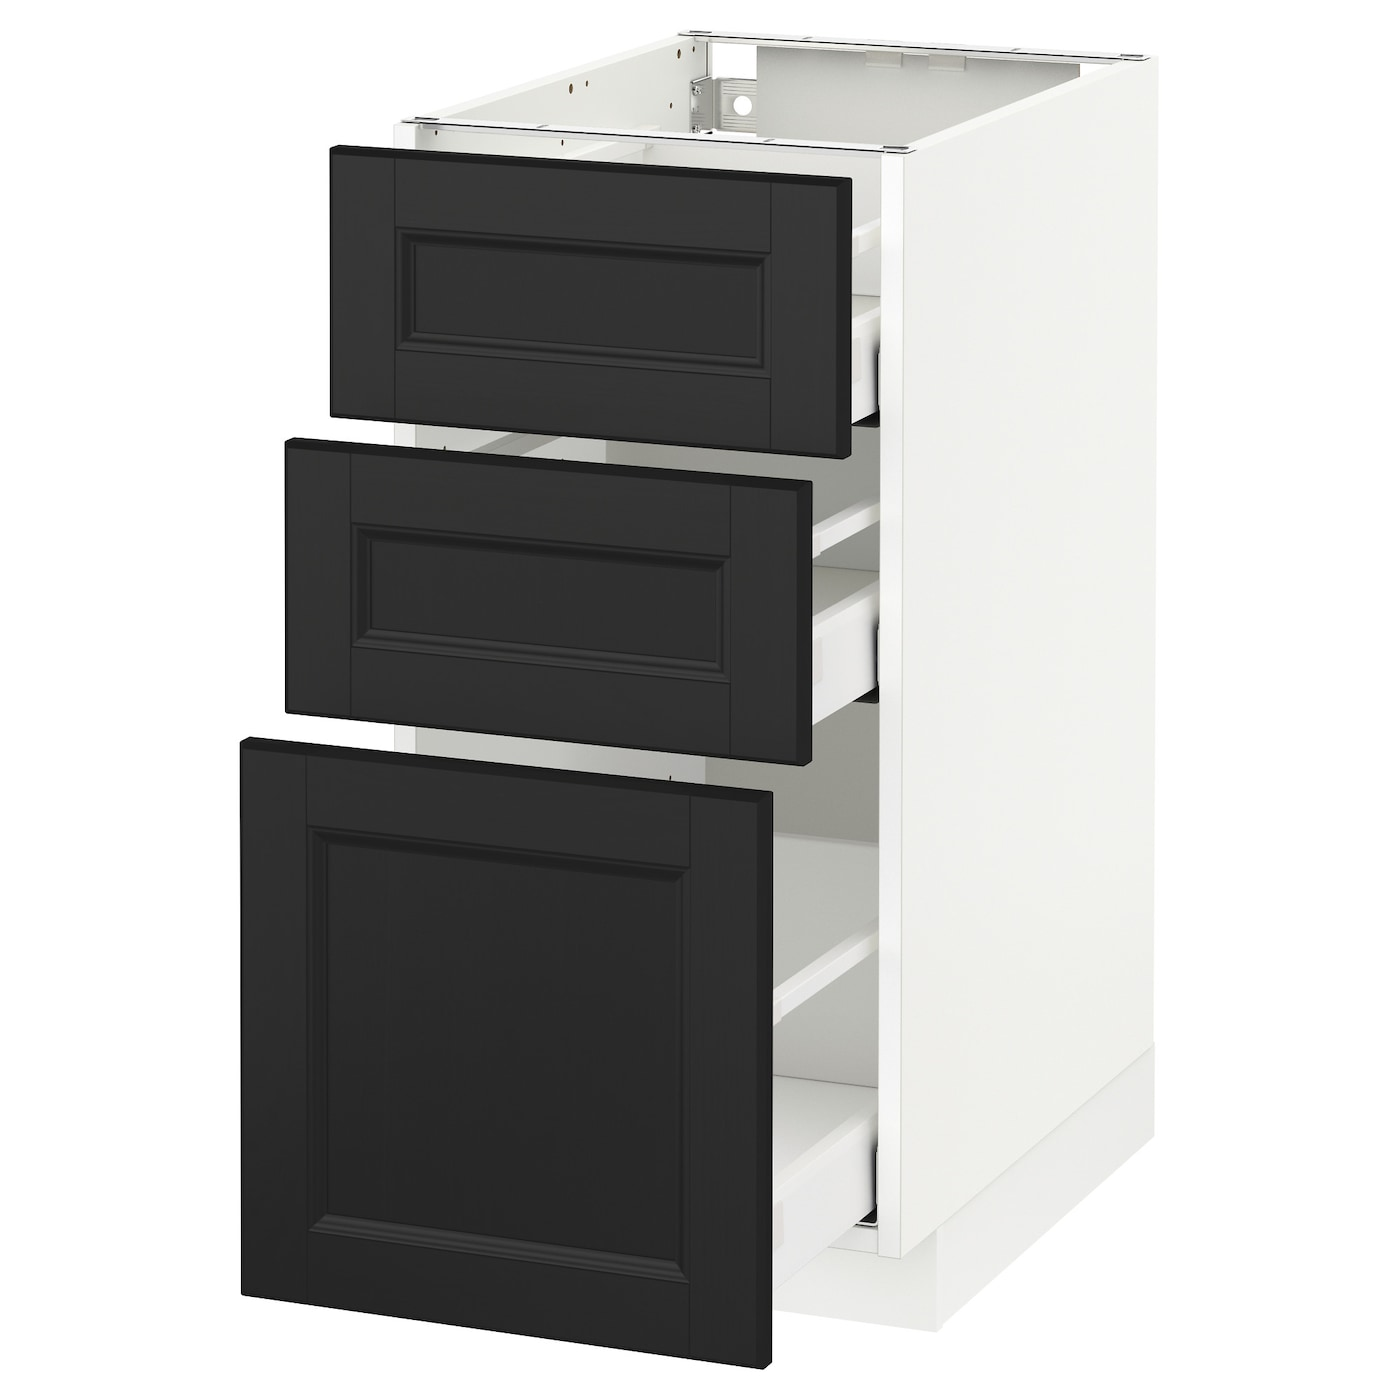 metod maximera base cabinet with 3 drawers white laxarby black brown 40x60 cm ikea. Black Bedroom Furniture Sets. Home Design Ideas